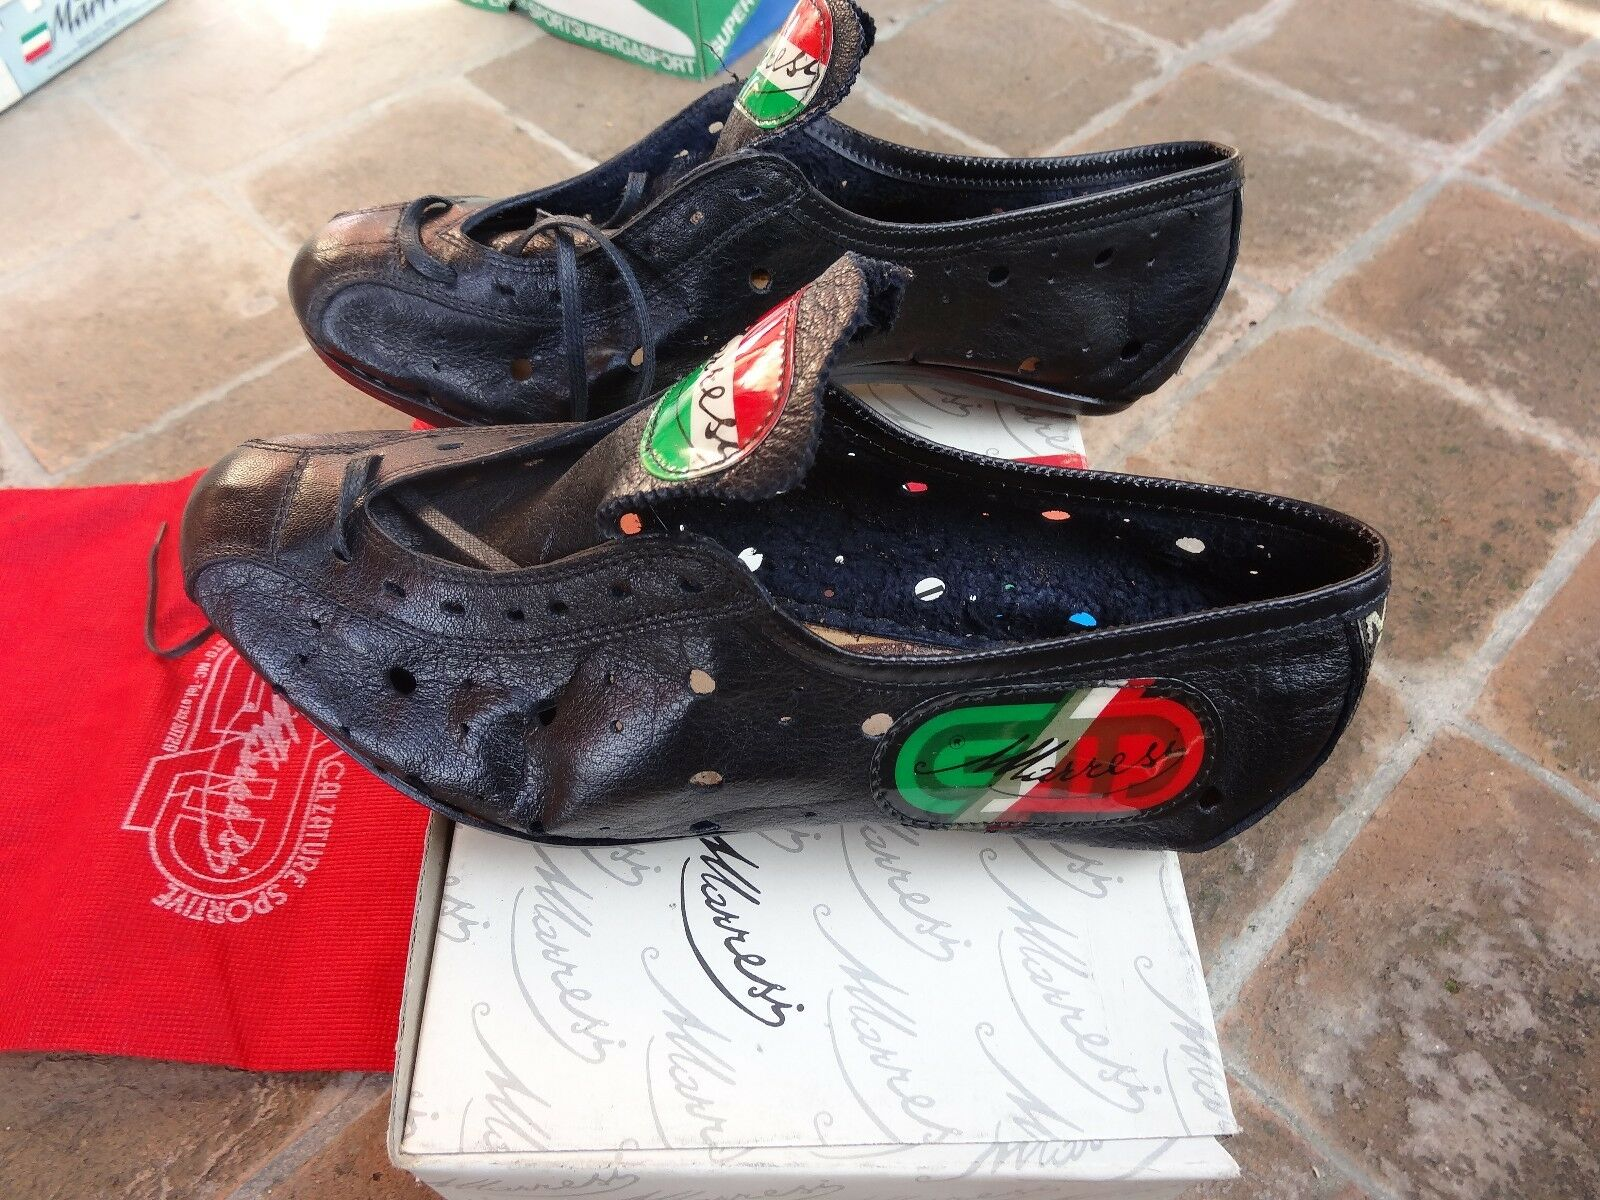 NIB  Marresi vitage cycling shoes leather l Eroica